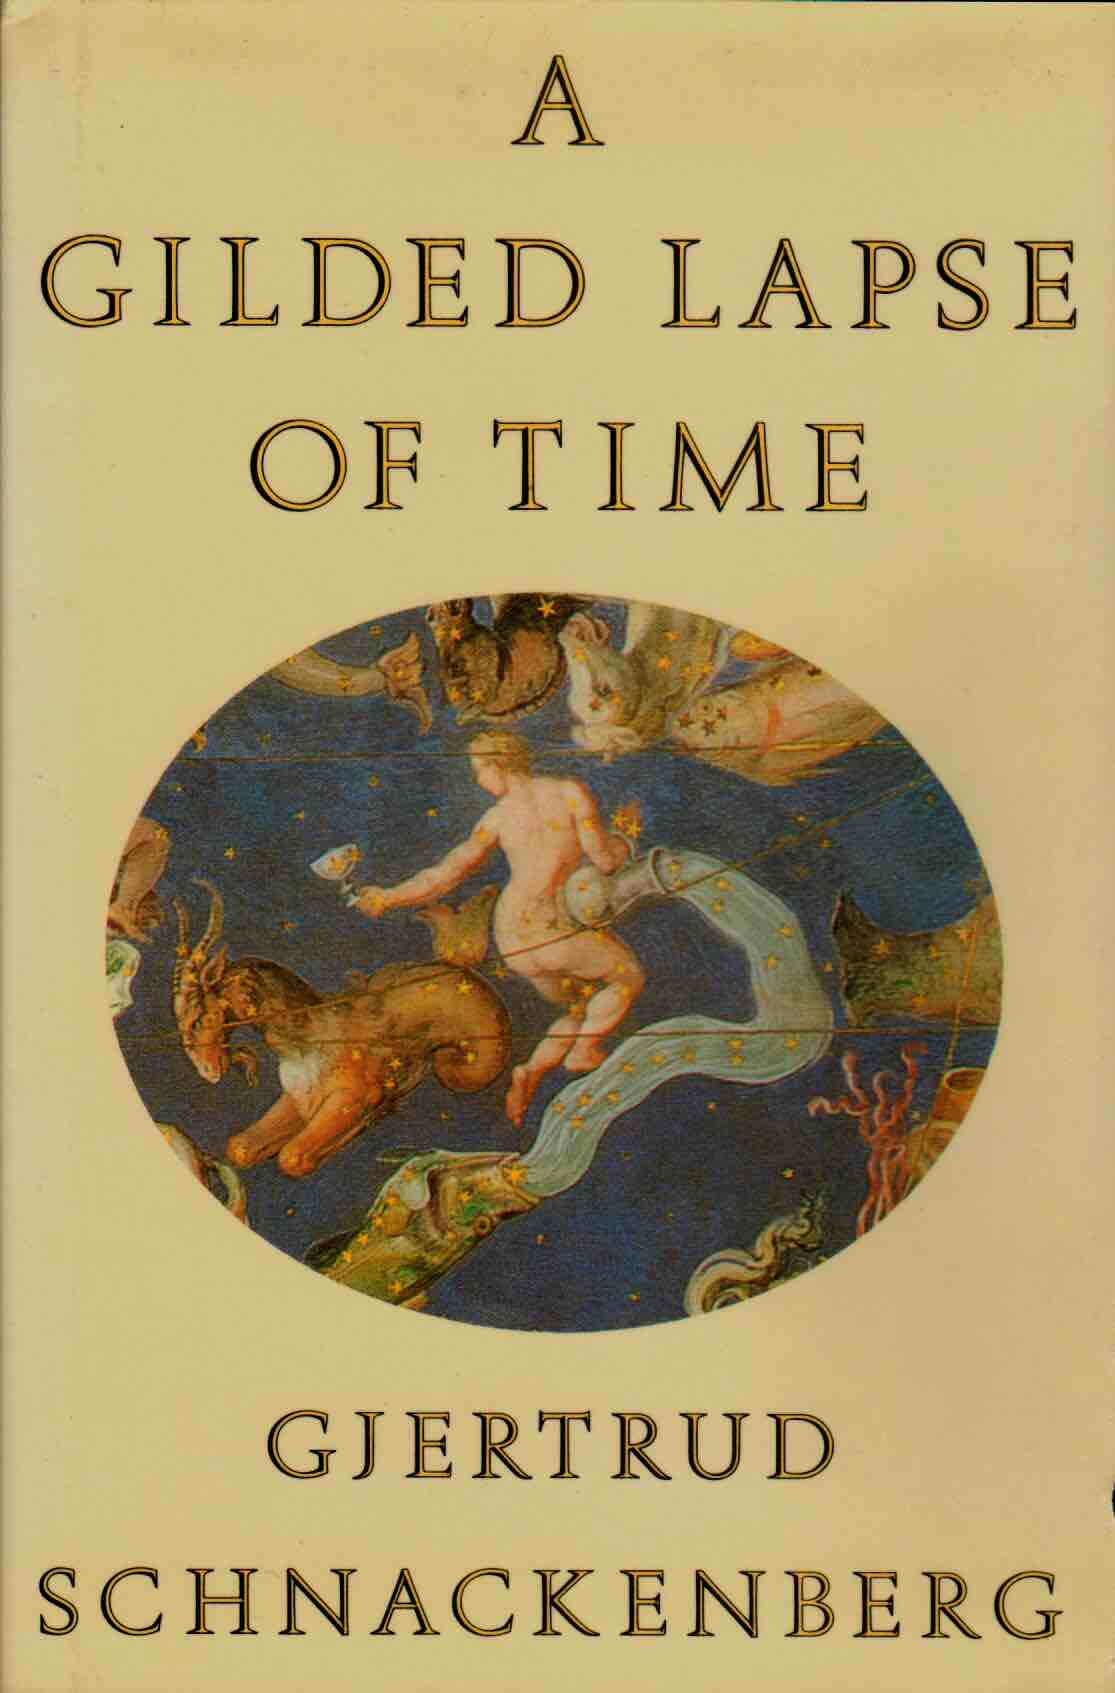 Cover of A Gilded Lapse of Time